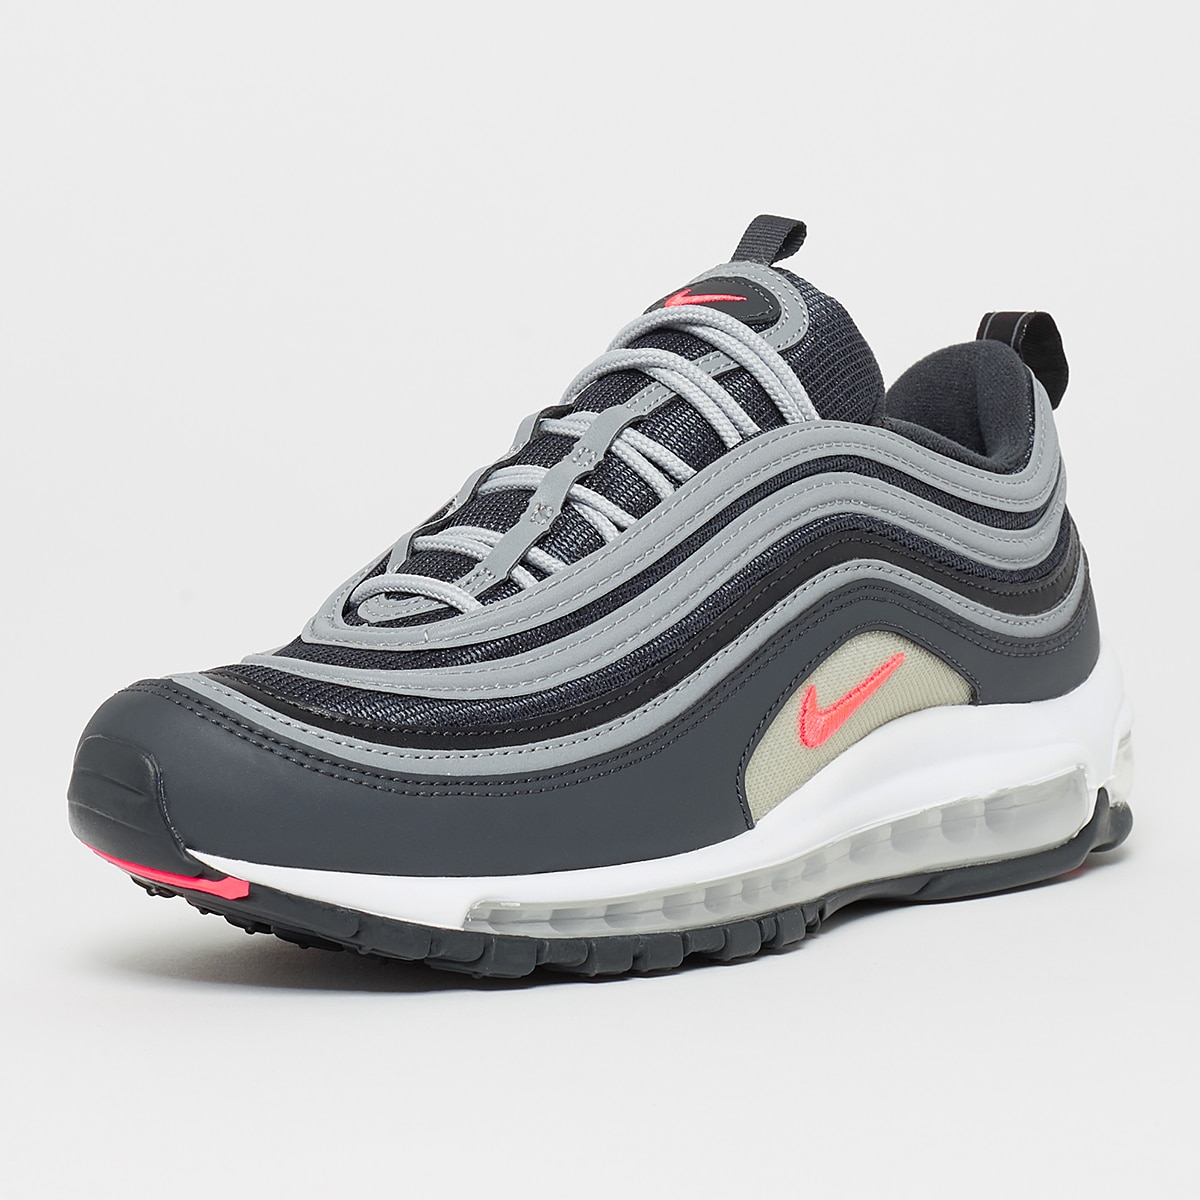 Nike Air max 97 in 66877 Ramstein Miesenbach for €120.00 for